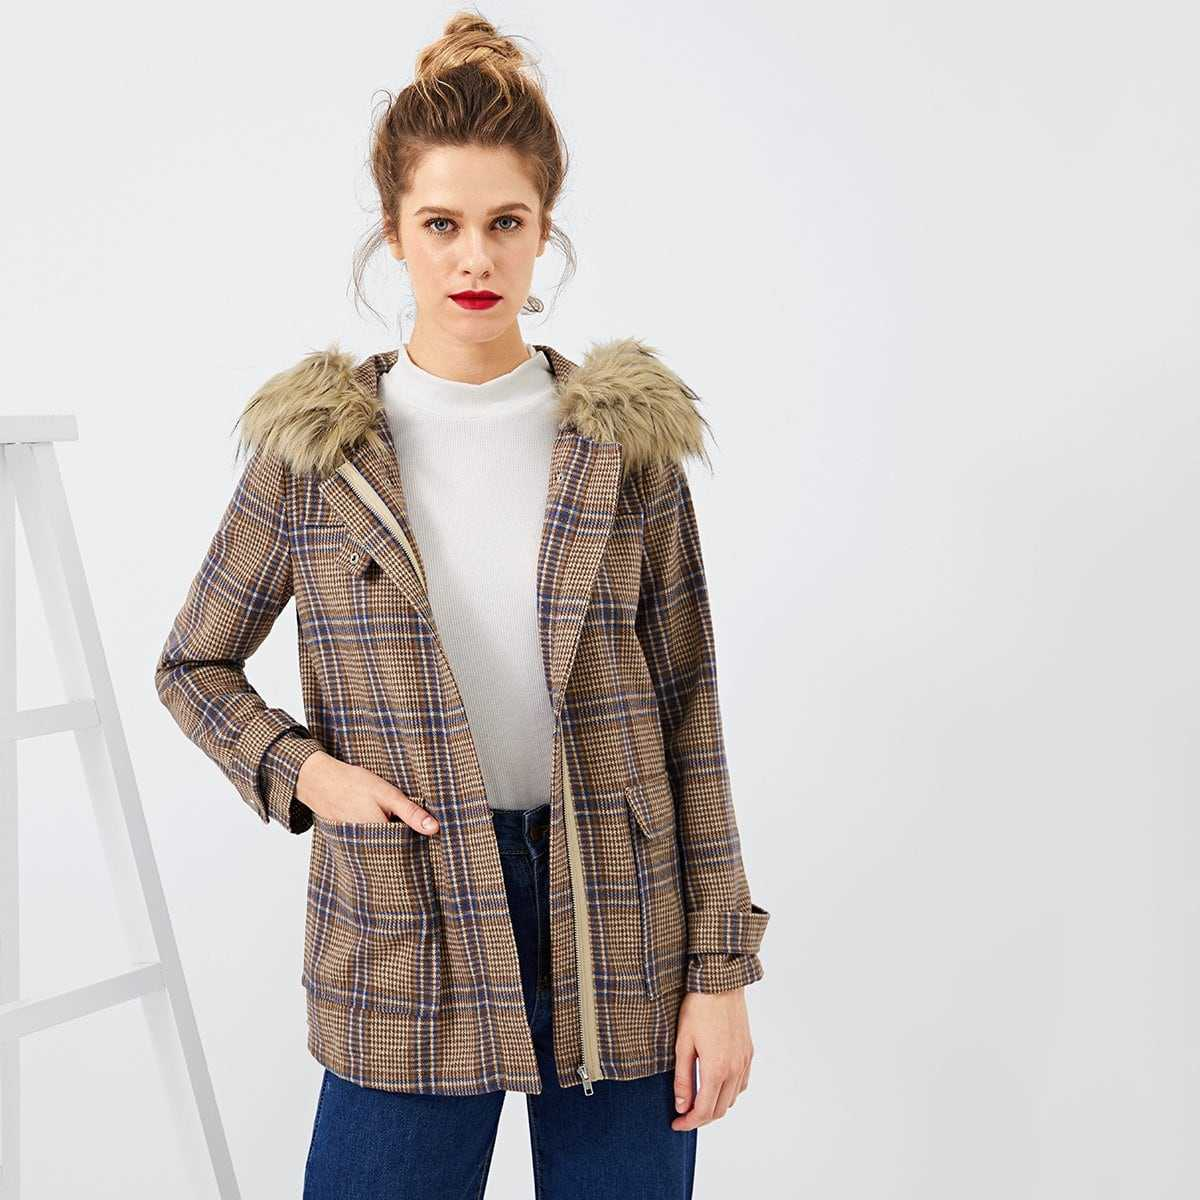 Faux Fur Contrast Plaid Coat in Brown by ROMWE on GOOFASH